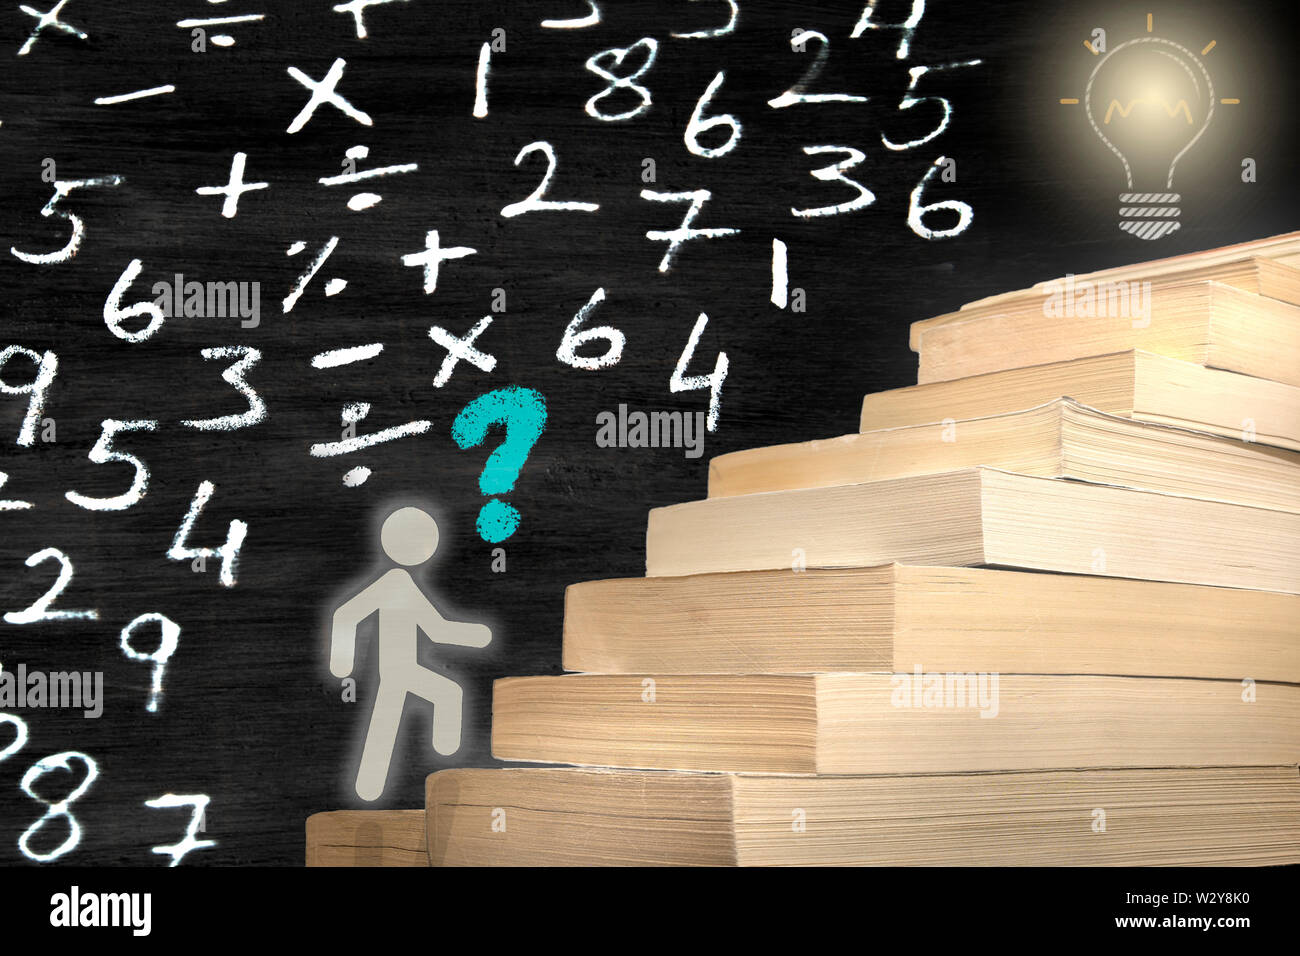 The man figure stepping books. reaching the target by studying. concept photo with numbers Stock Photo